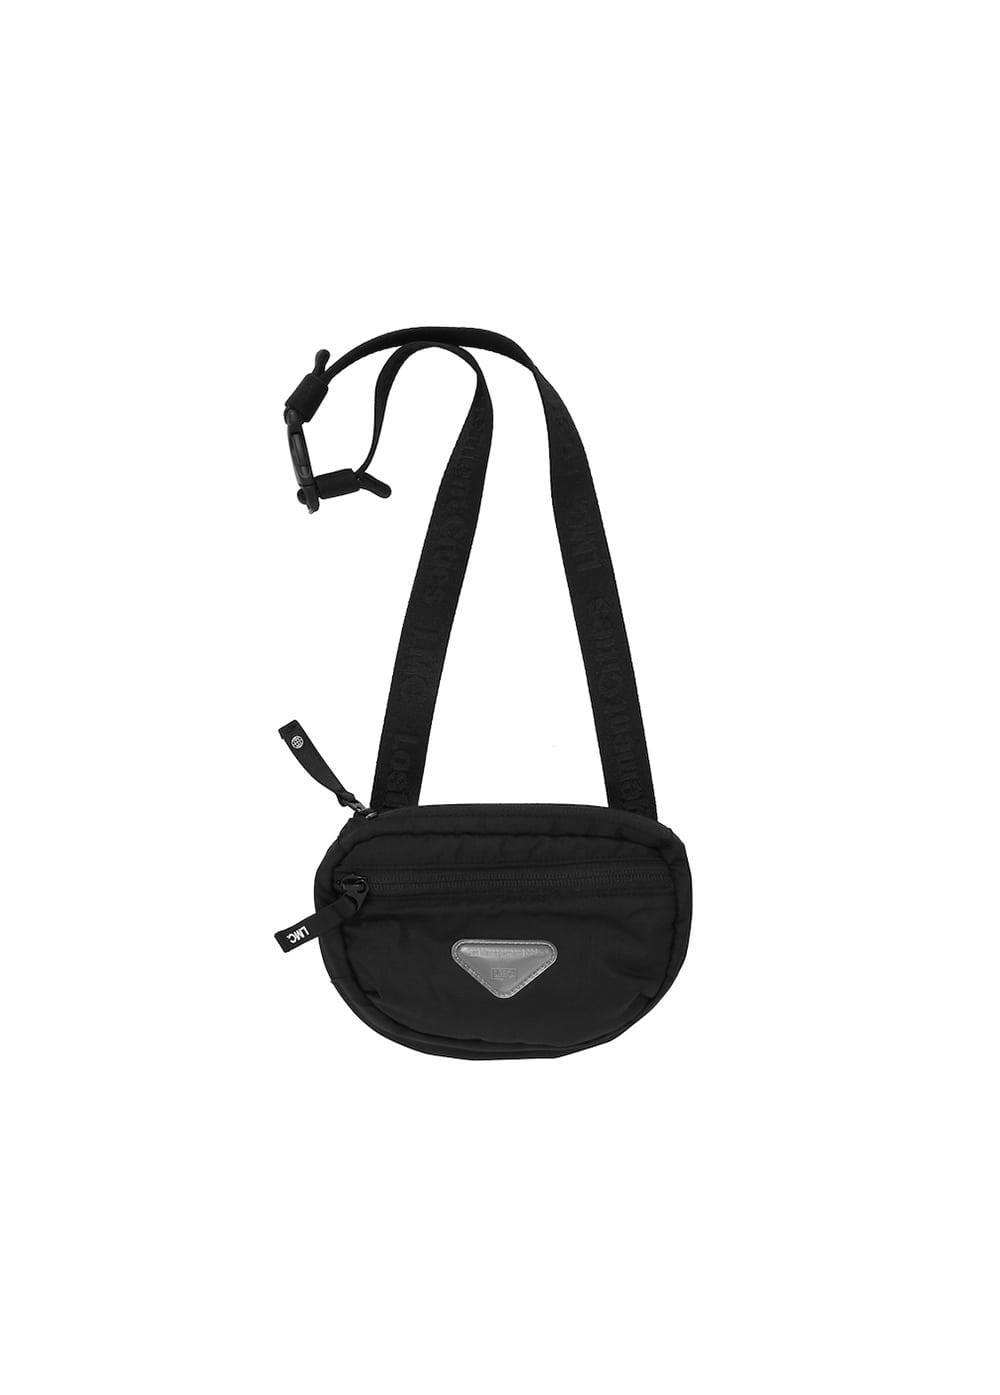 LMC MILANO MINI FANNY PACK black